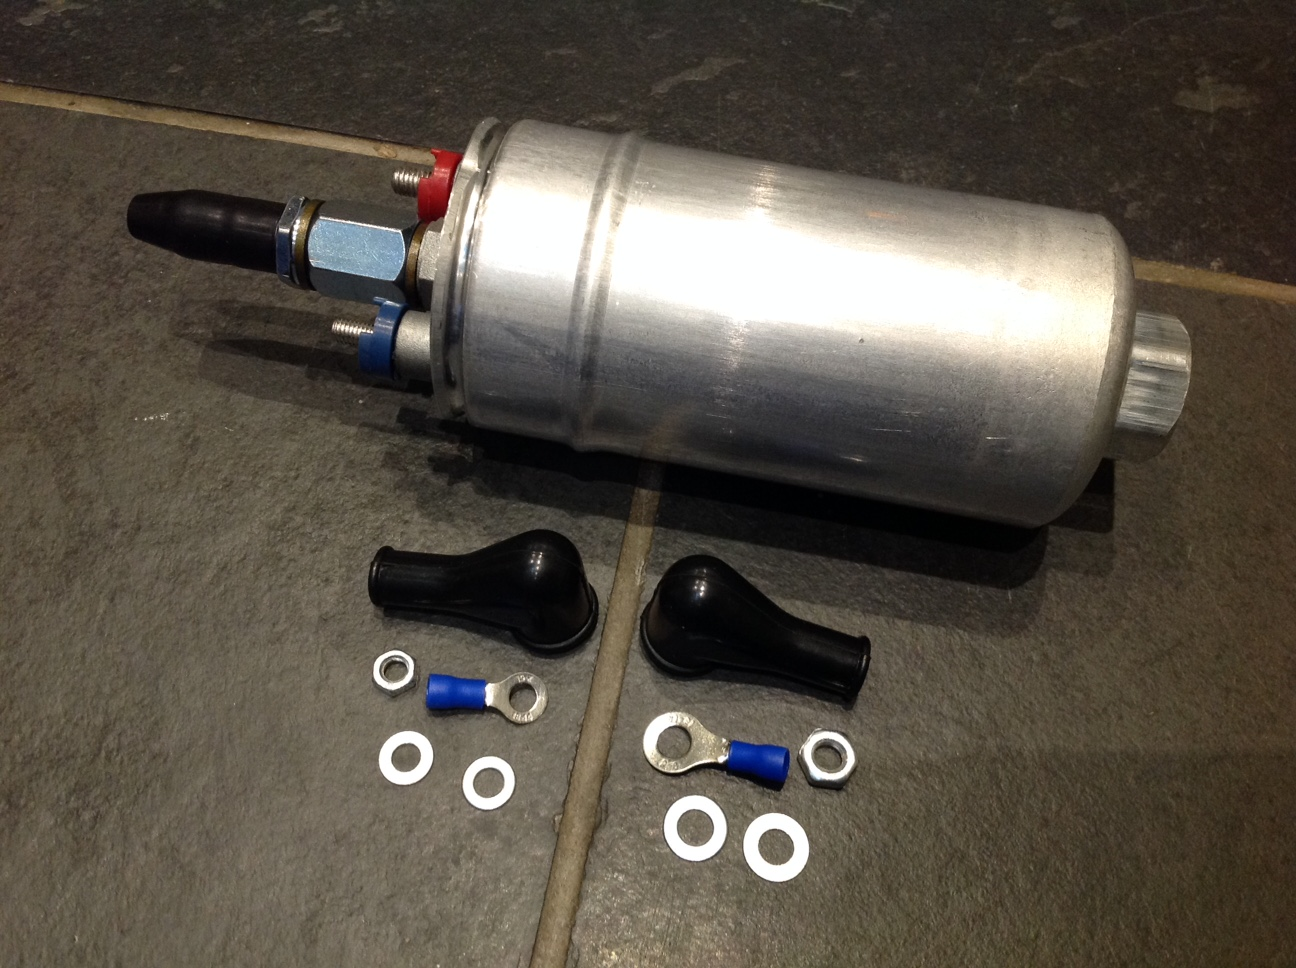 Barbarian Racing Bosch 044 Type Fuel Pump, Supports up to 650 BHP